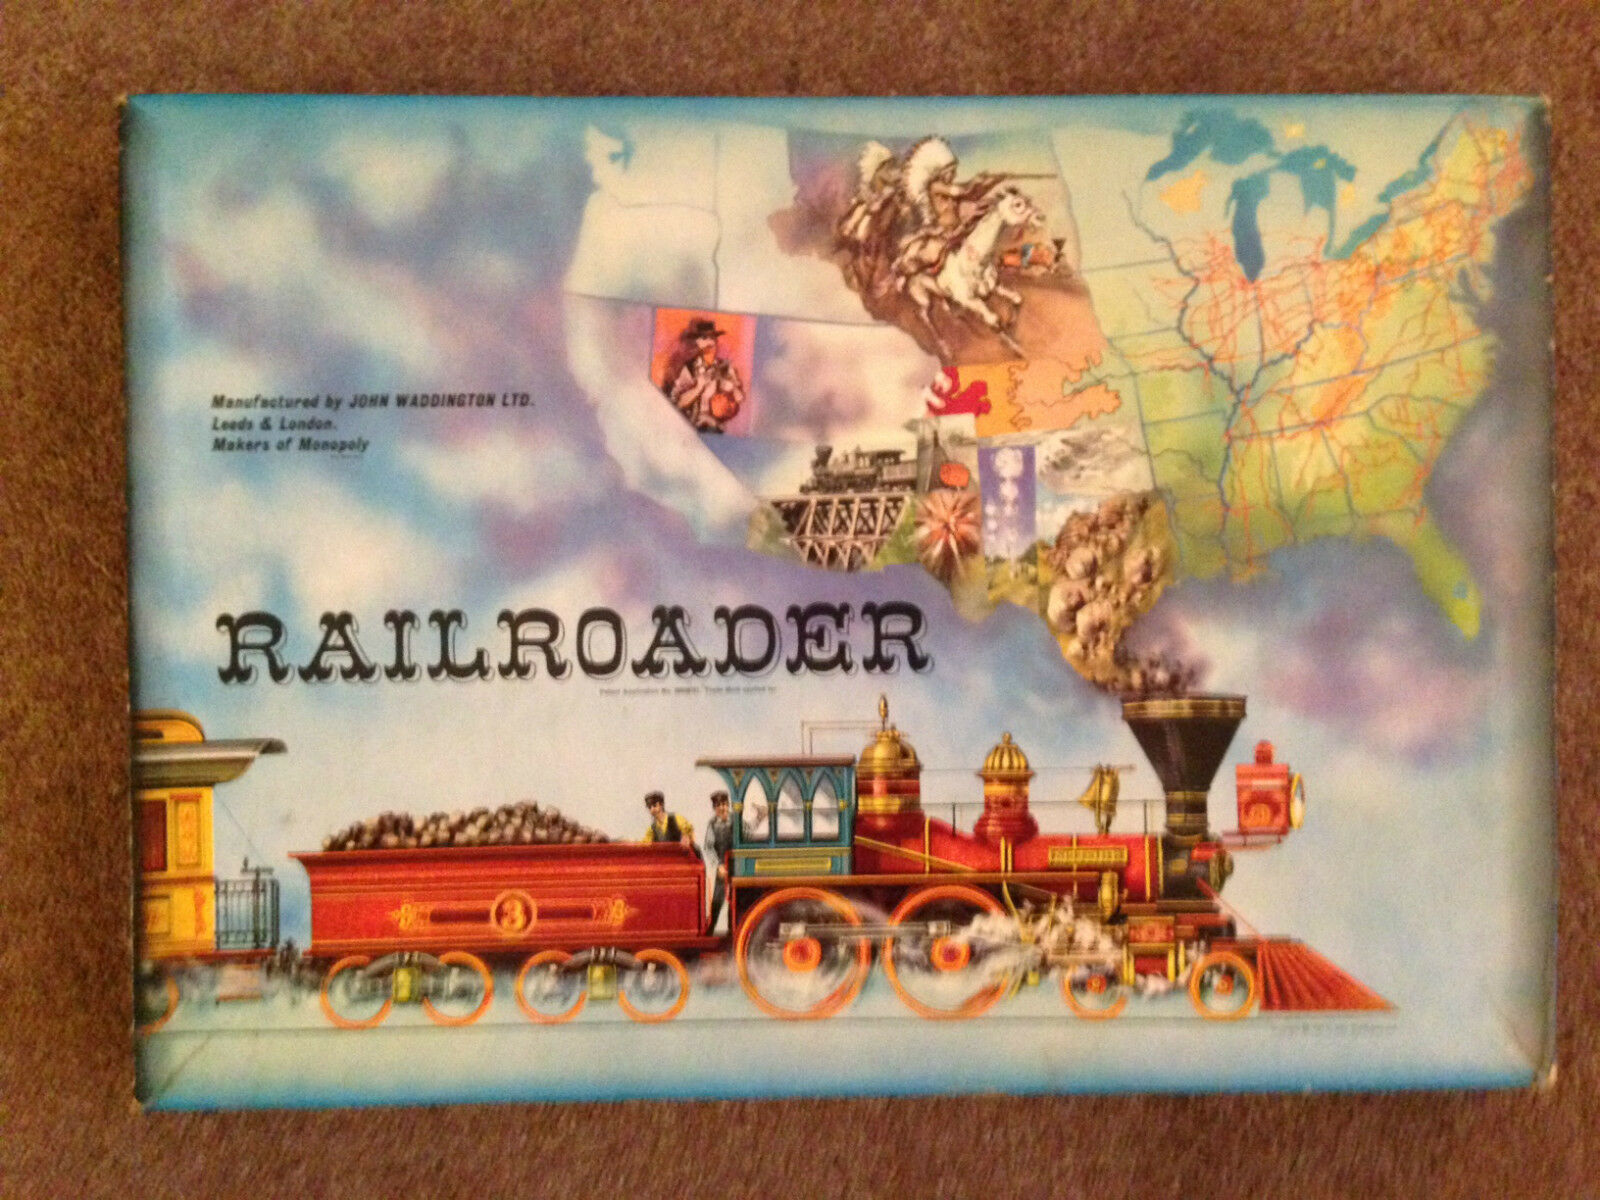 WADDINGTONS  Railroader  Very Rare Vintage family Board Game (VGC) 1960s